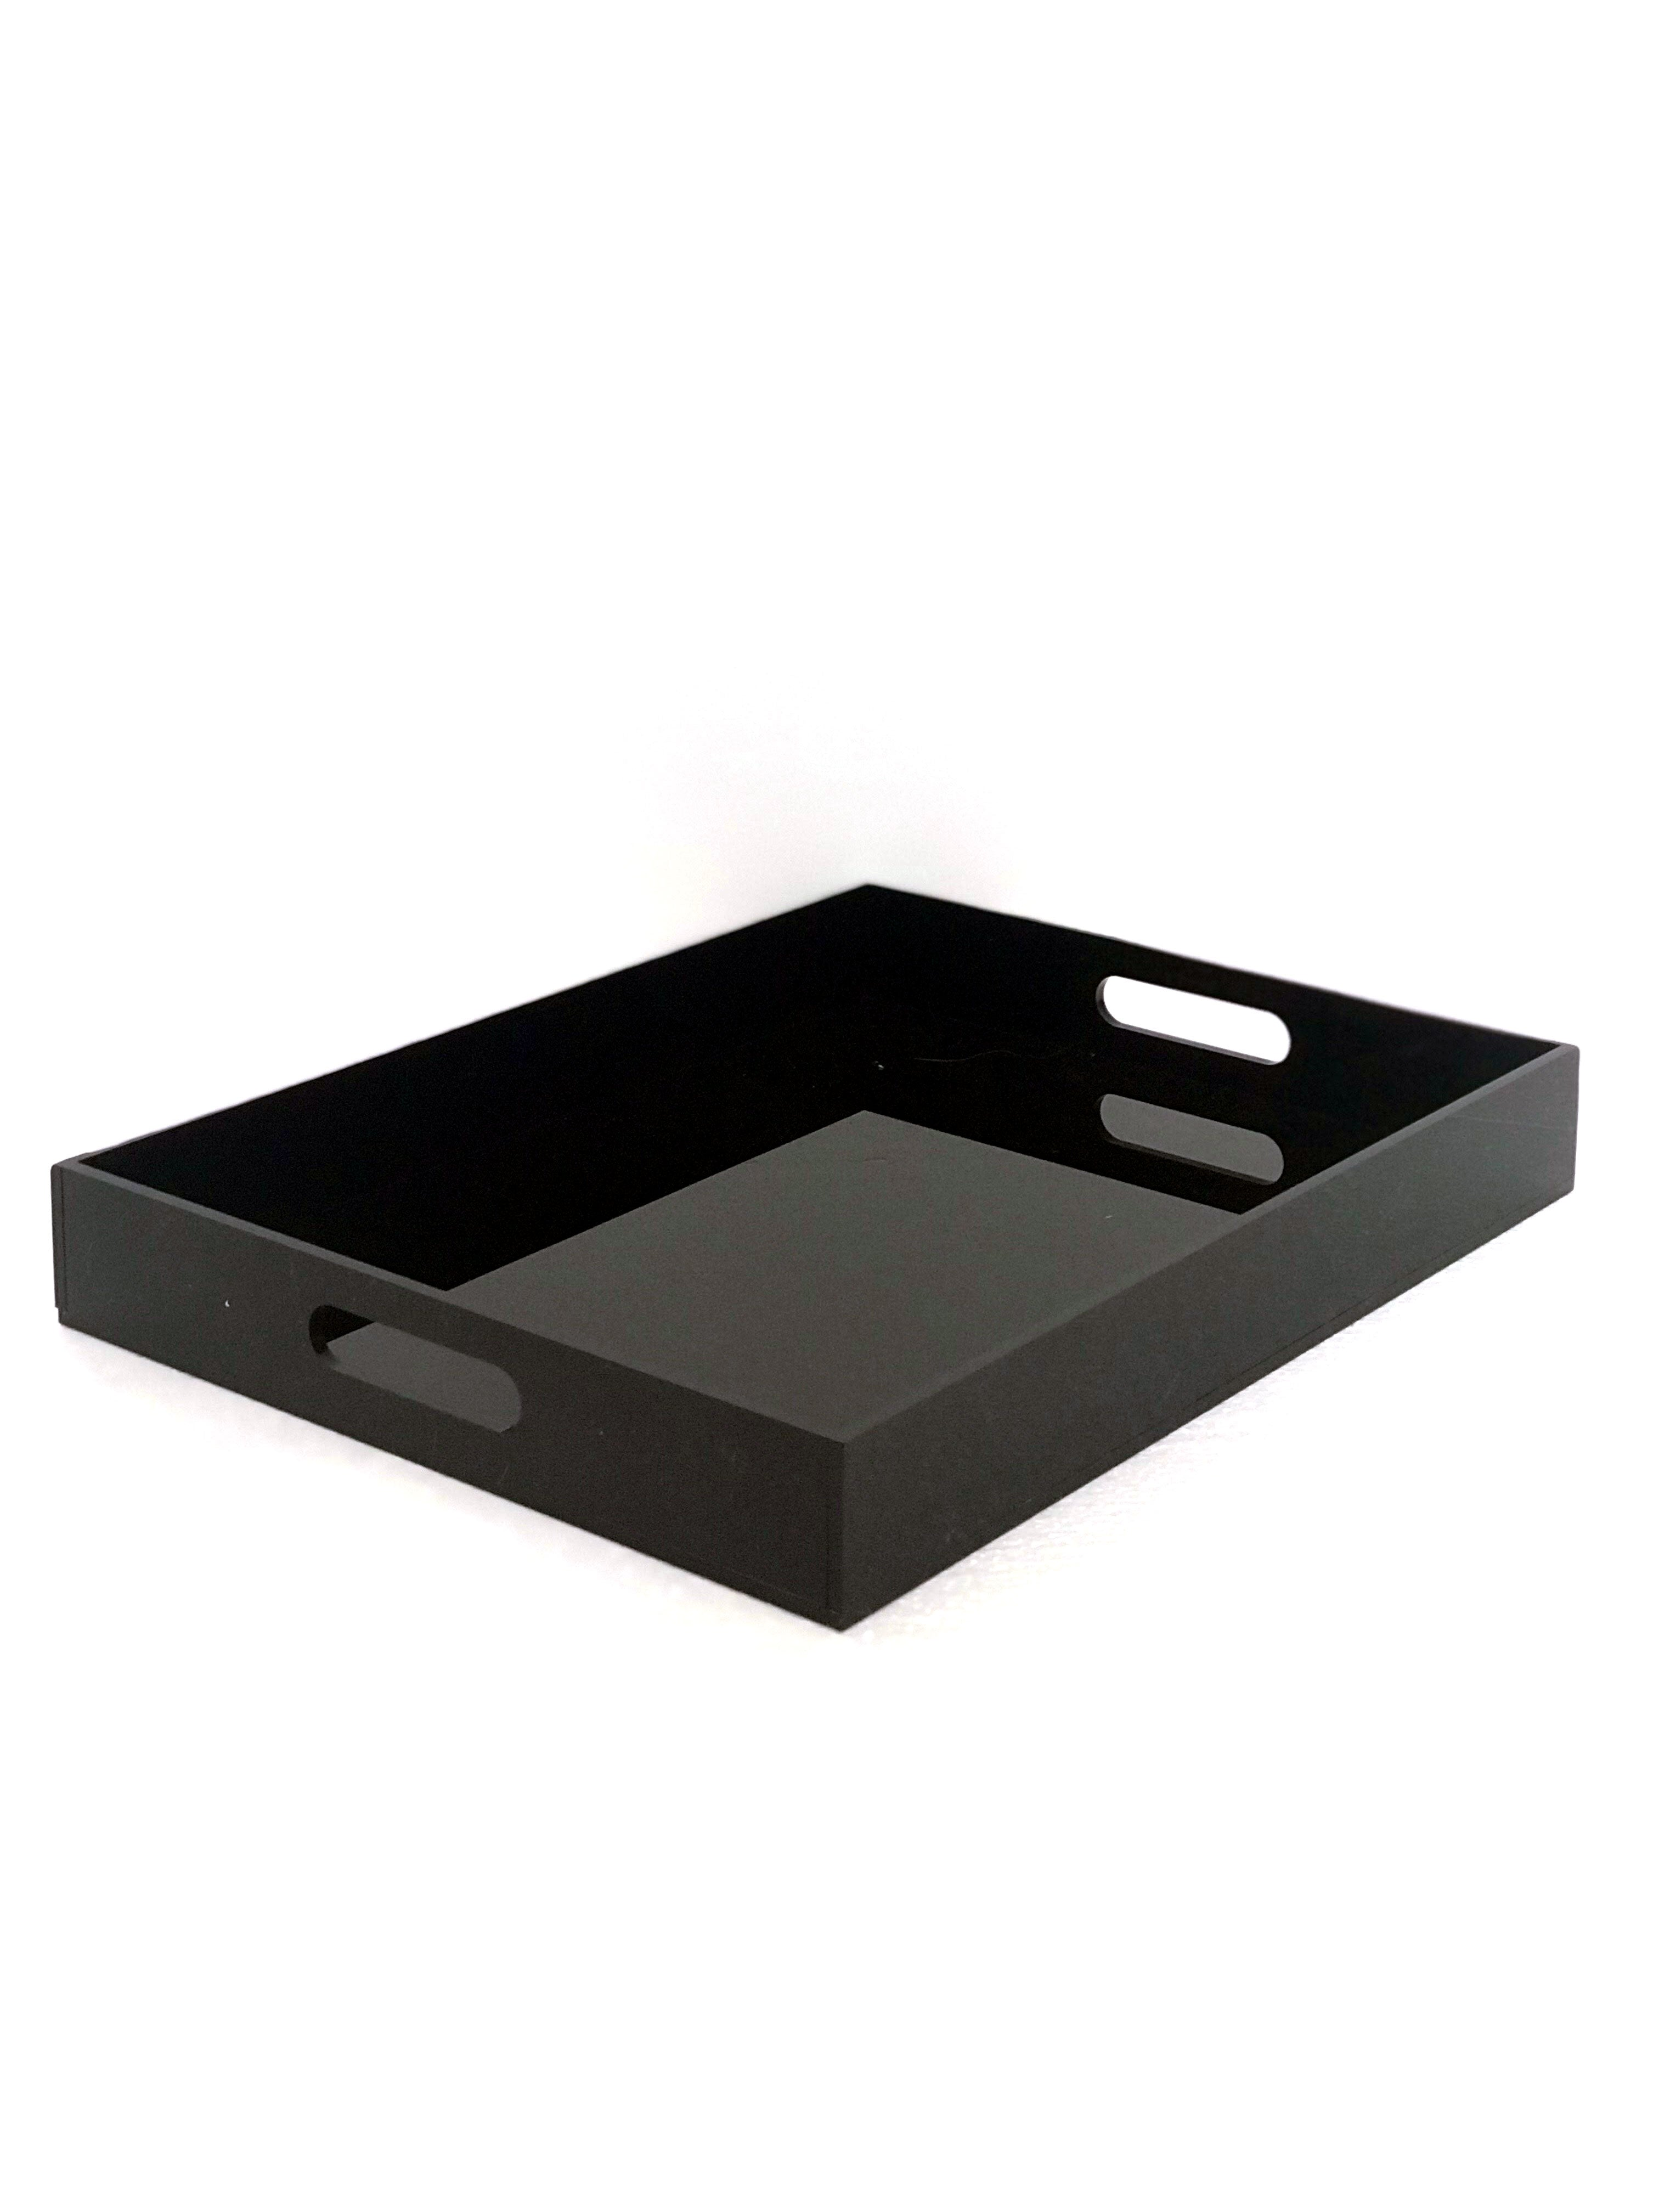 Onyx Serving Tray